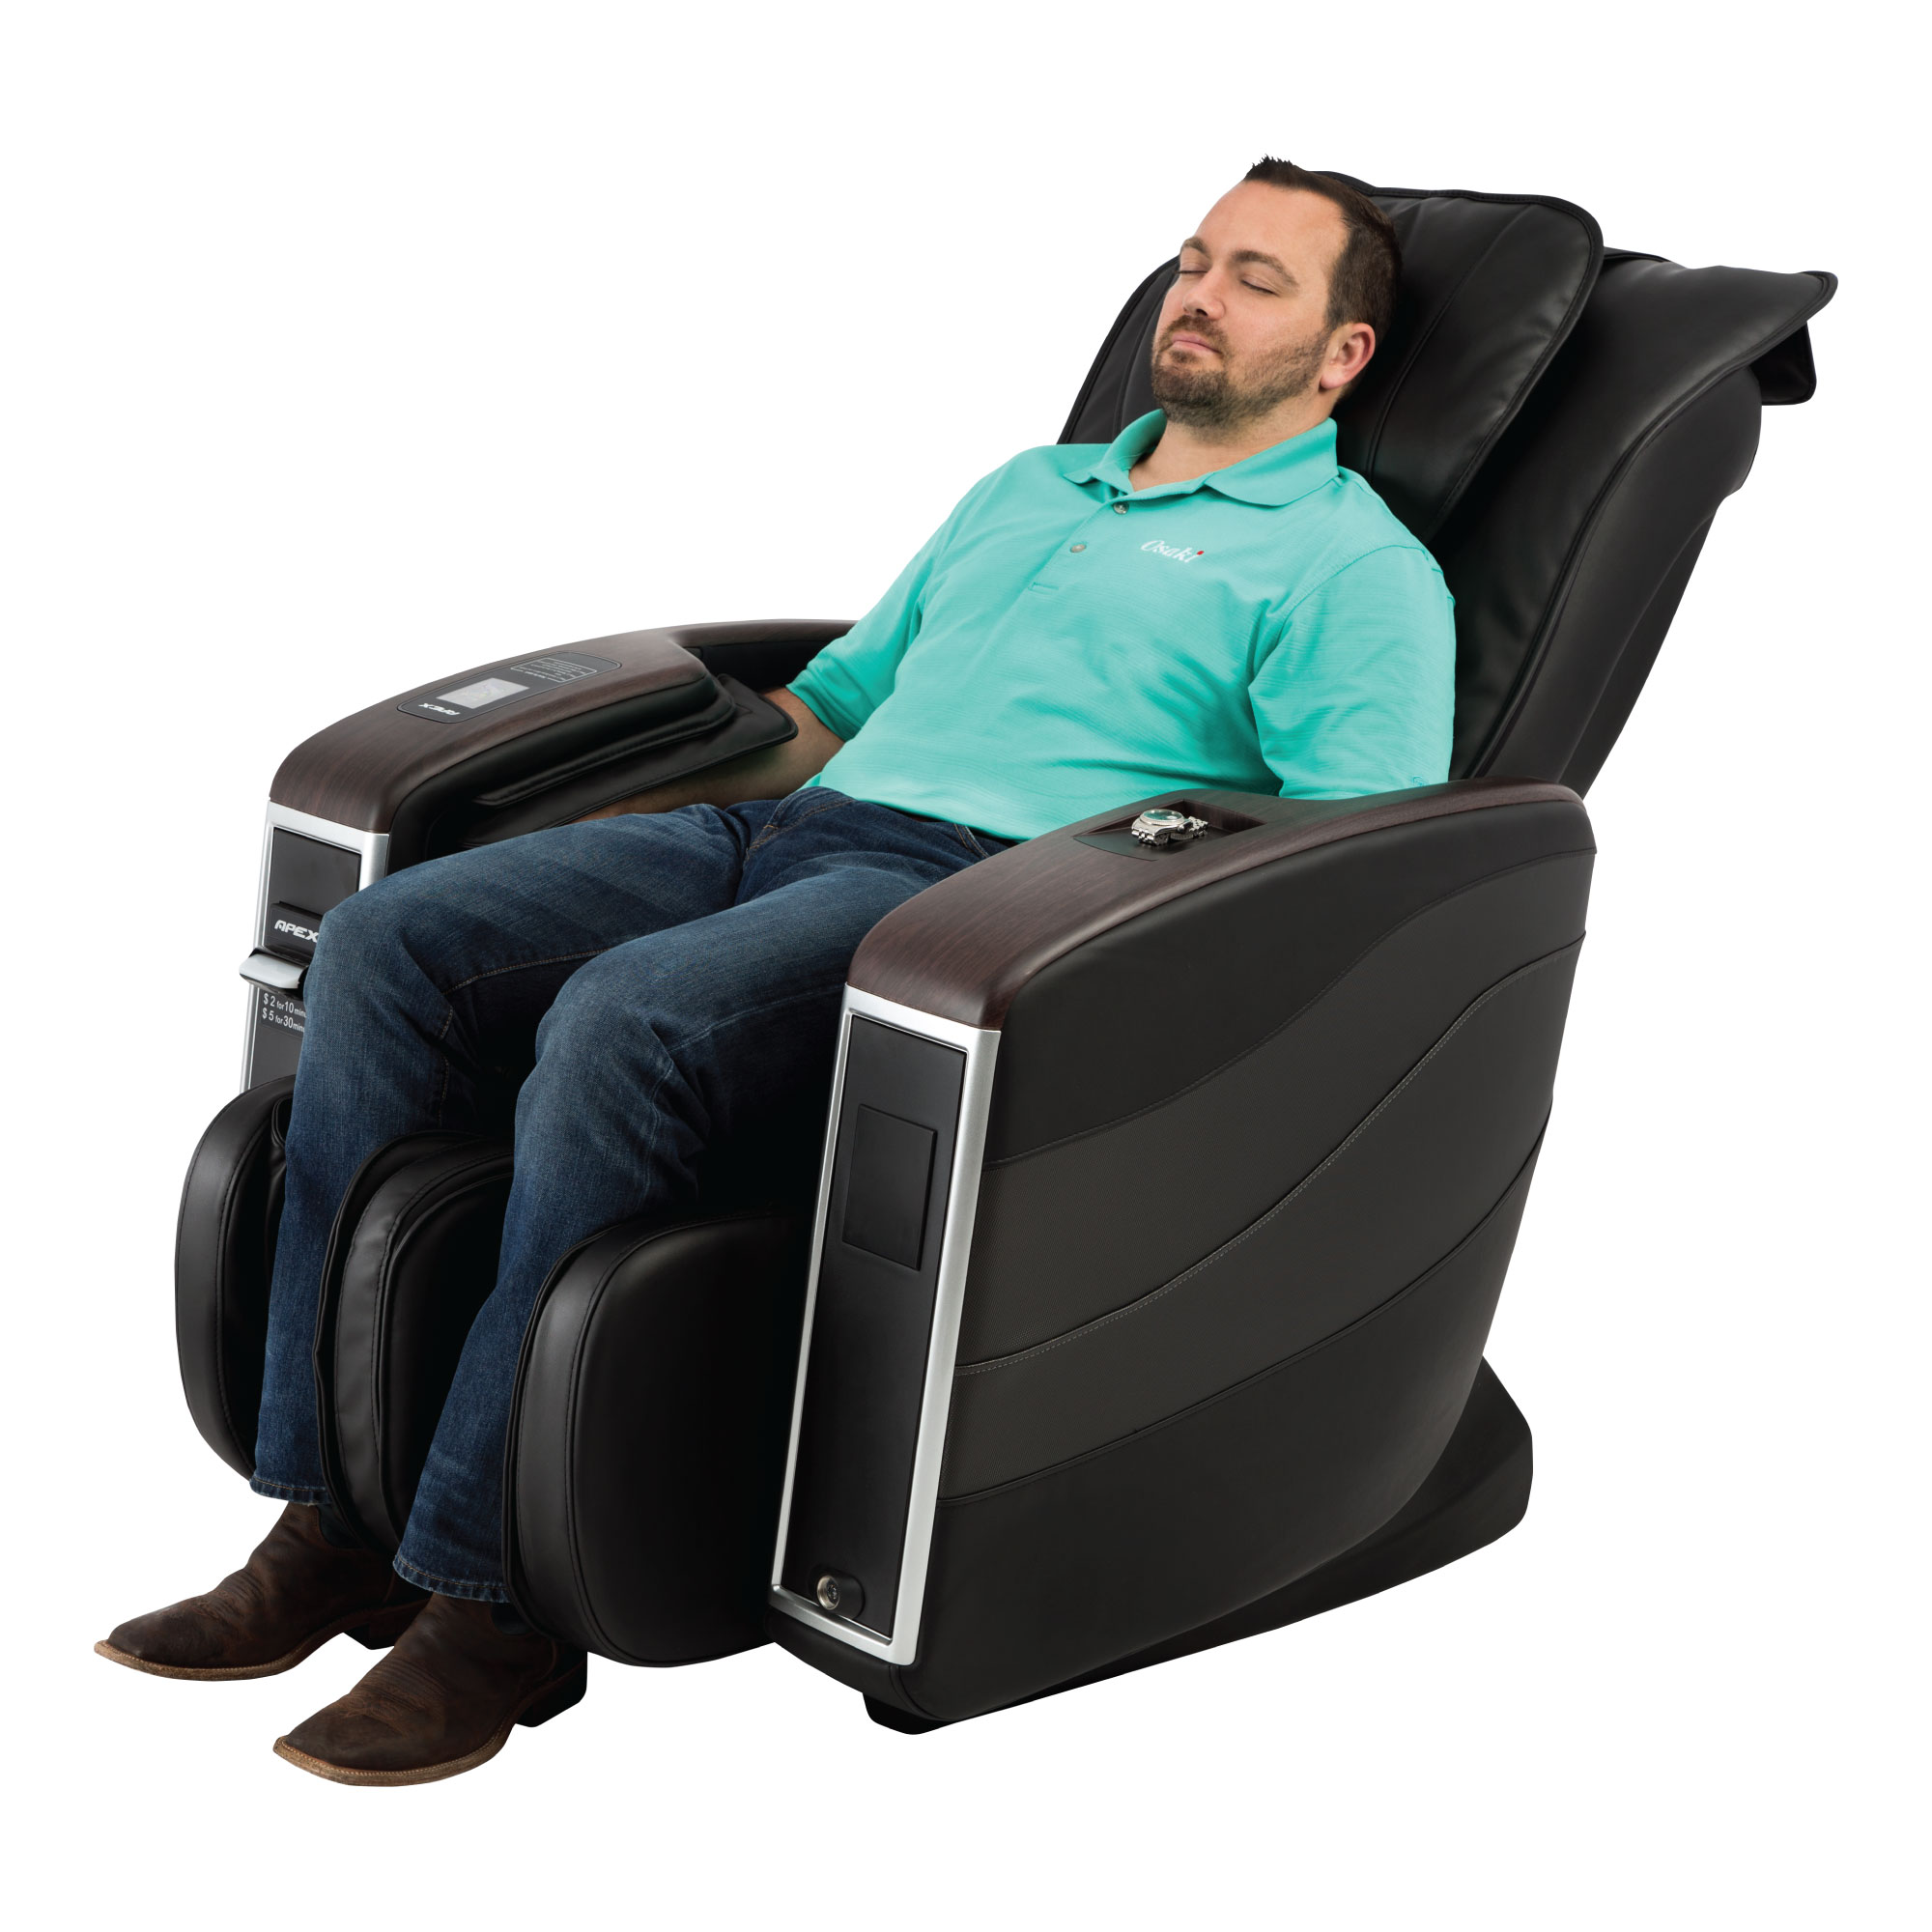 used vending massage chairs for sale high chair cover etsy galaxy aria 6